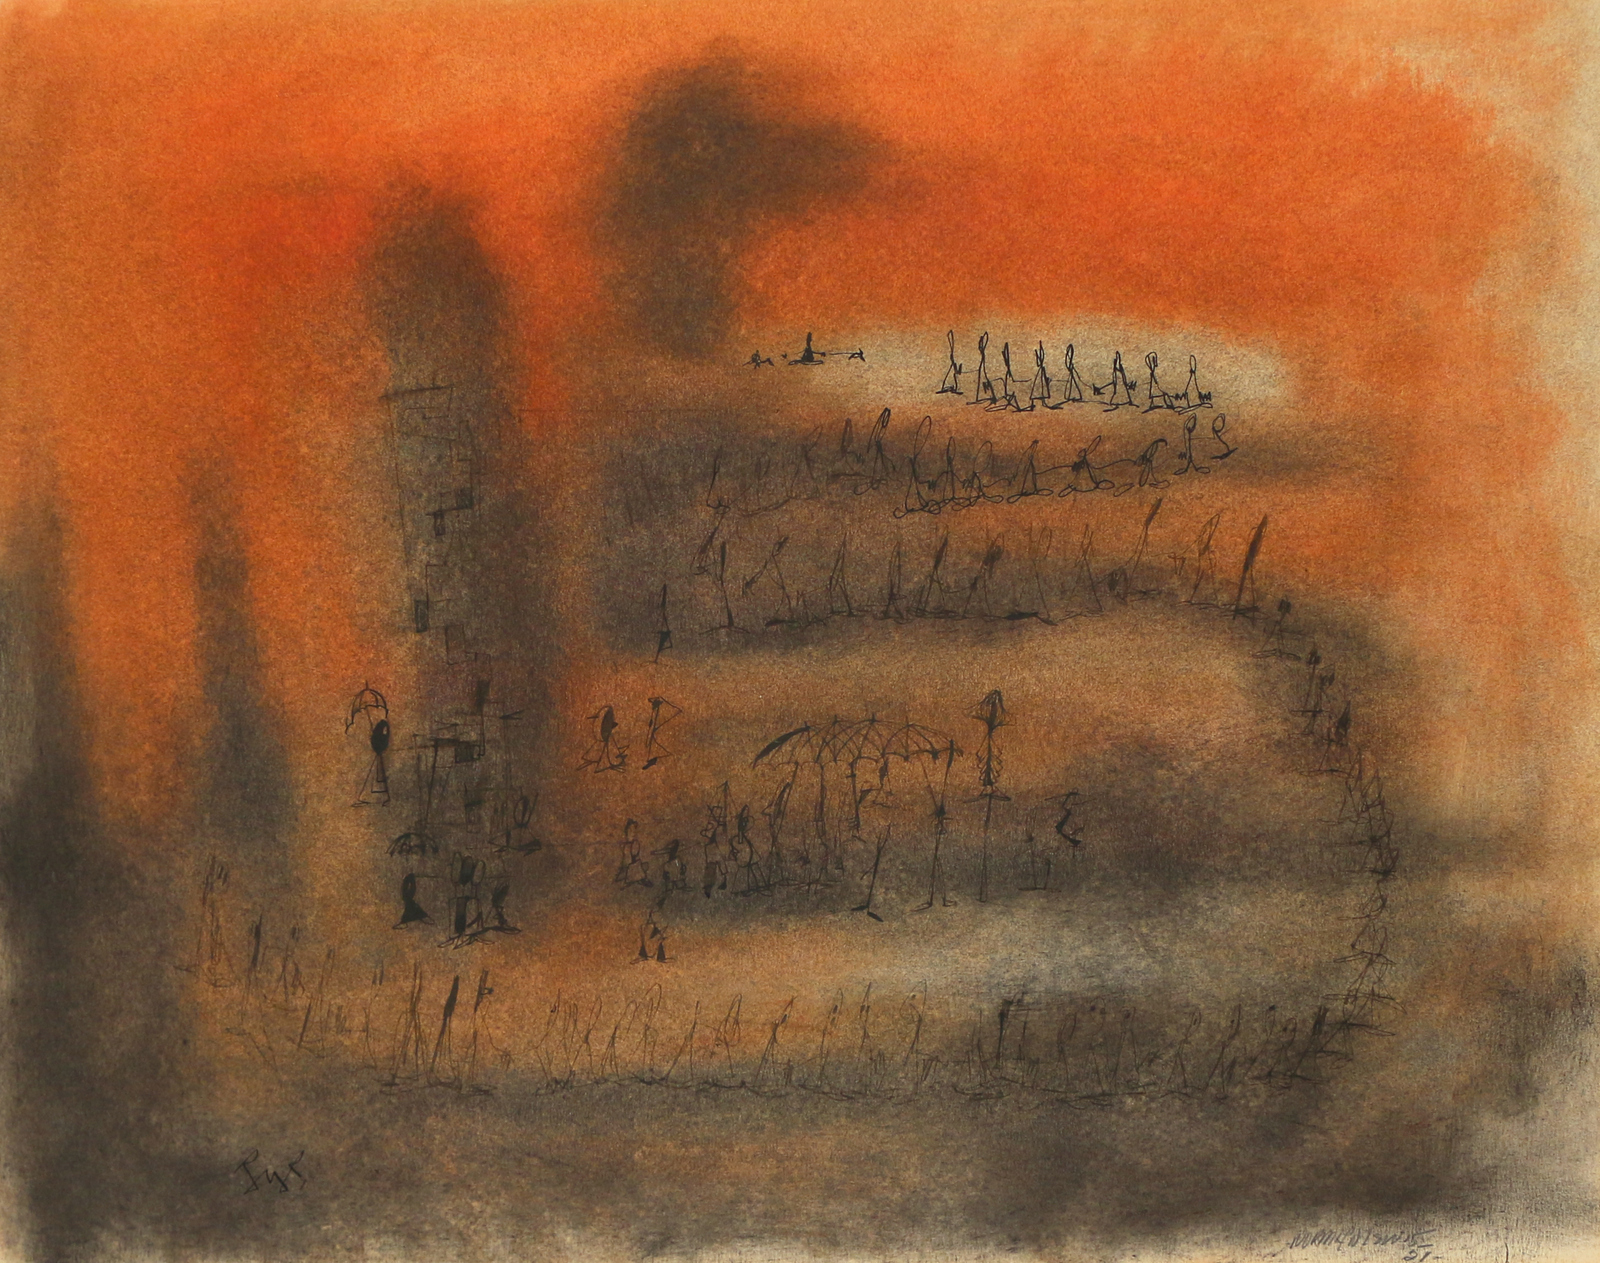 Norman Wilfred Lewis (1919-1979), Untitled, 1951, mixed media on paper, 17 x 22 in.  $15,000-20,000